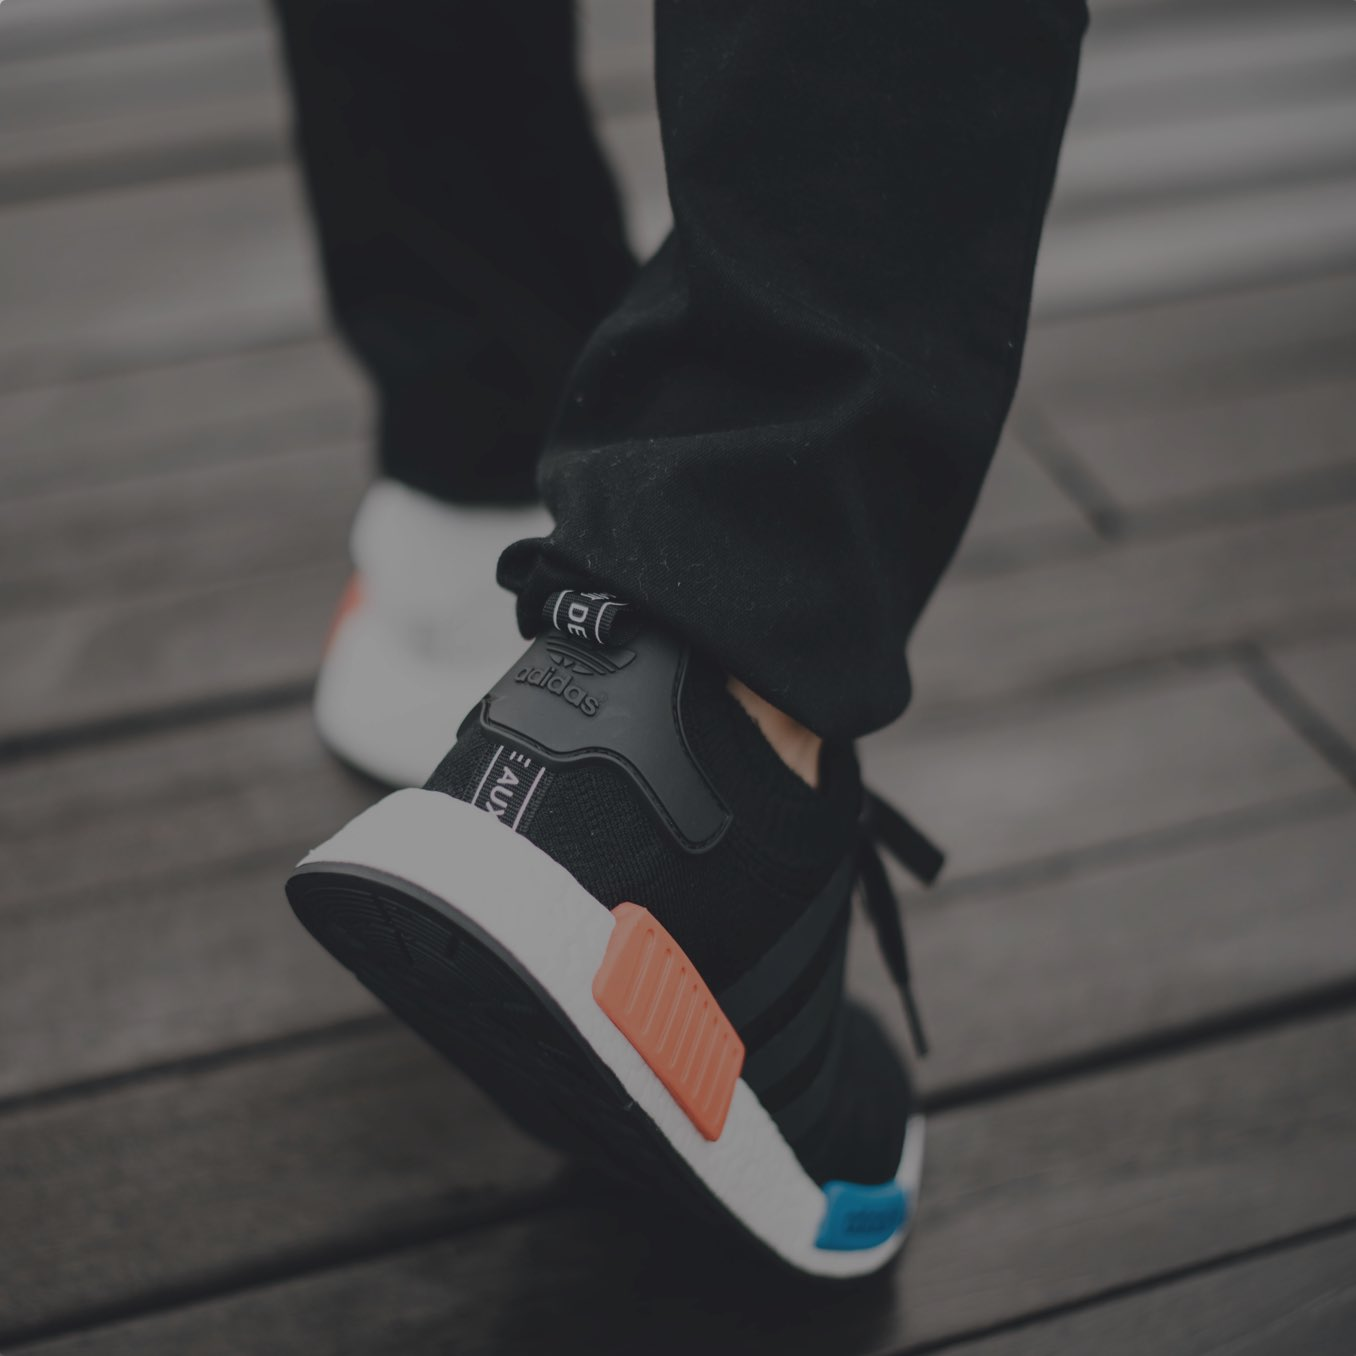 Image of a person wearing Adidas trainers